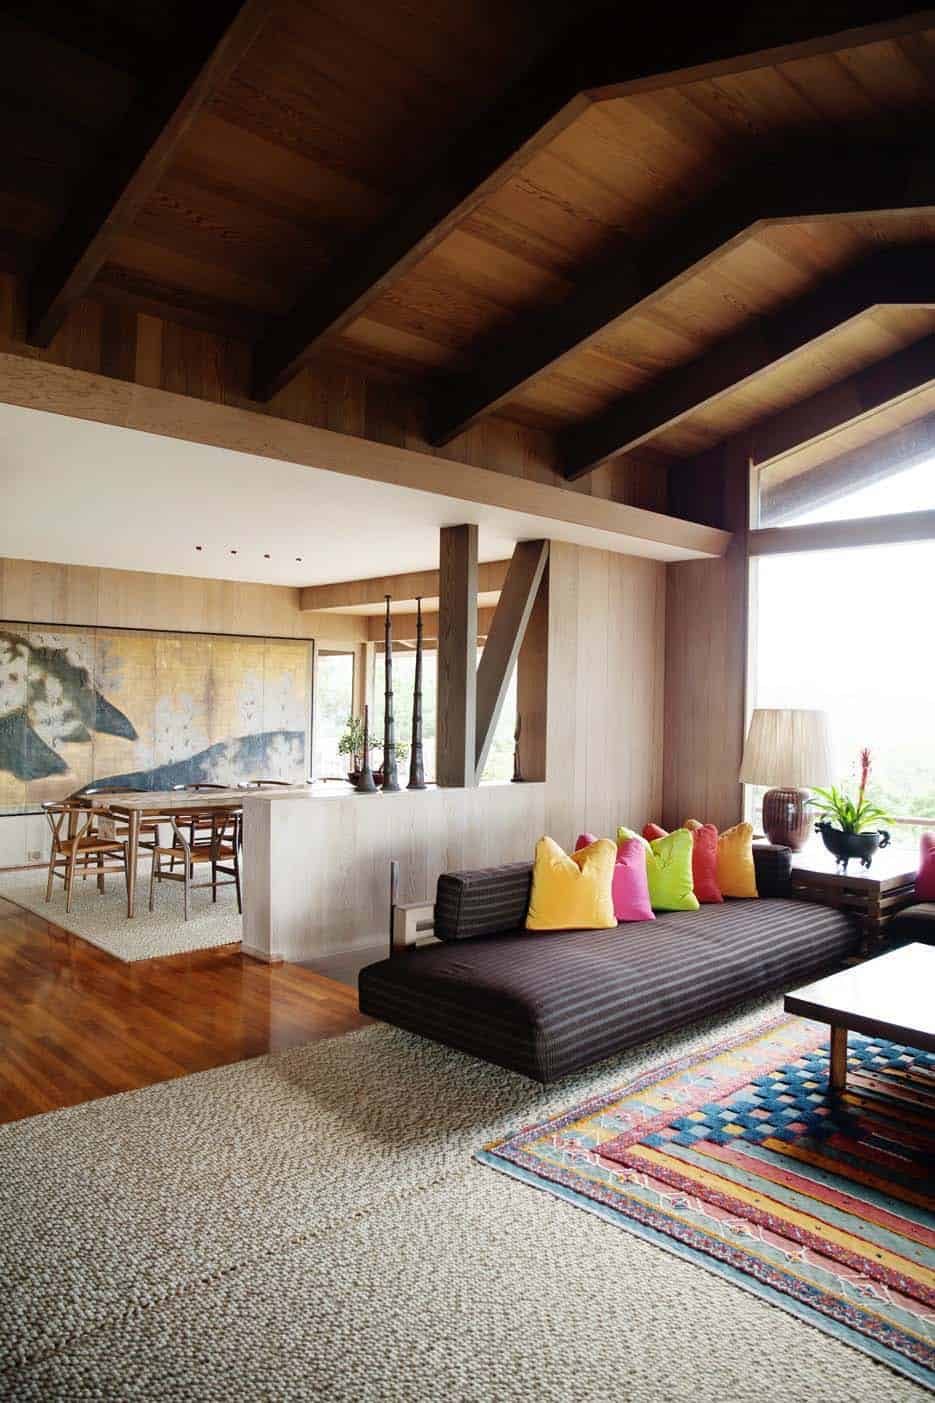 Interior Living Spaces-Exposed Ceiling Trusses-22-1 Kindesign